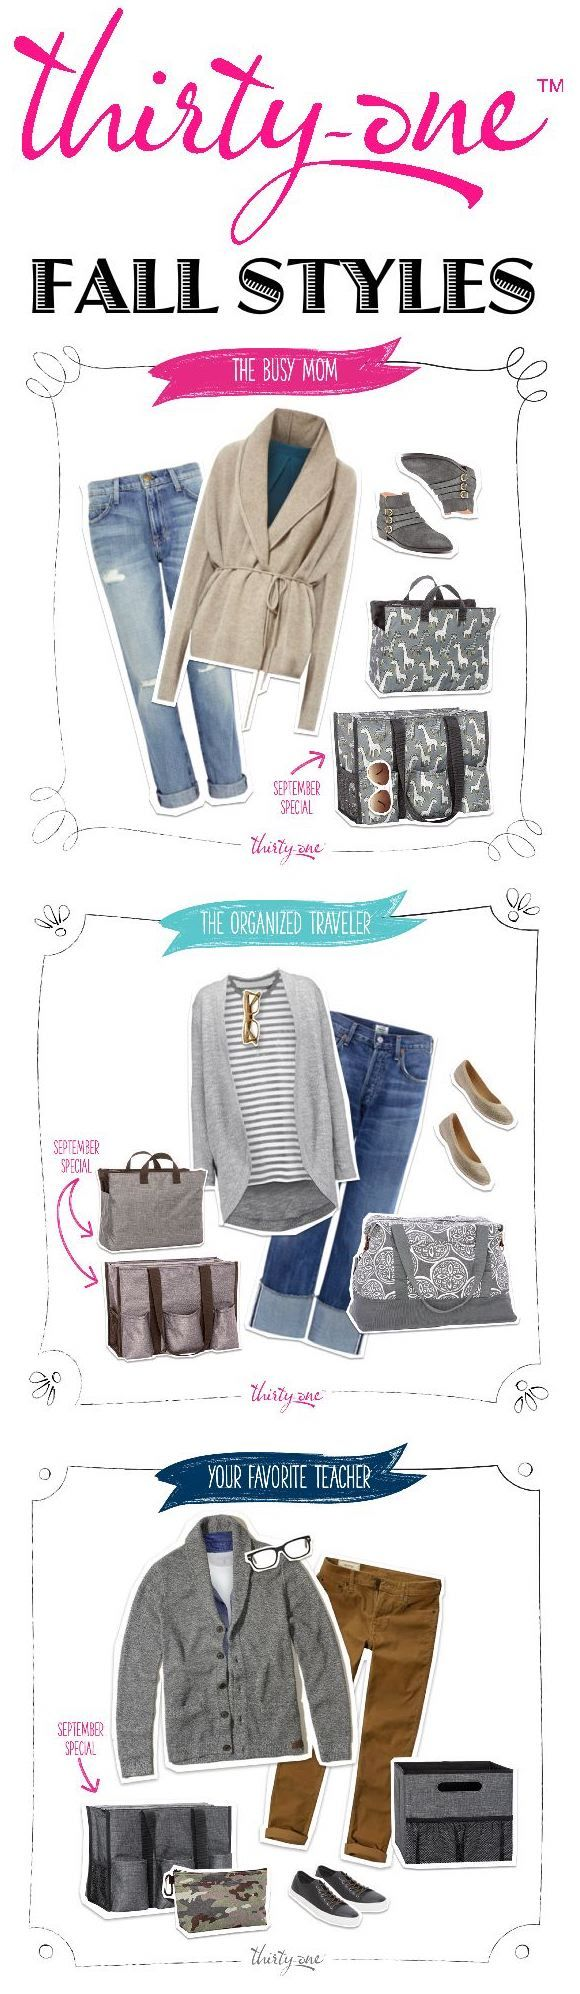 Thirty-One FALL STYLES for The Busy Mom, The Organized Traveler and Your Favorite Teacher. Check them out at MyThrityOne.com/PiaDavis or find your consultant in the upper right hand corner of the website.